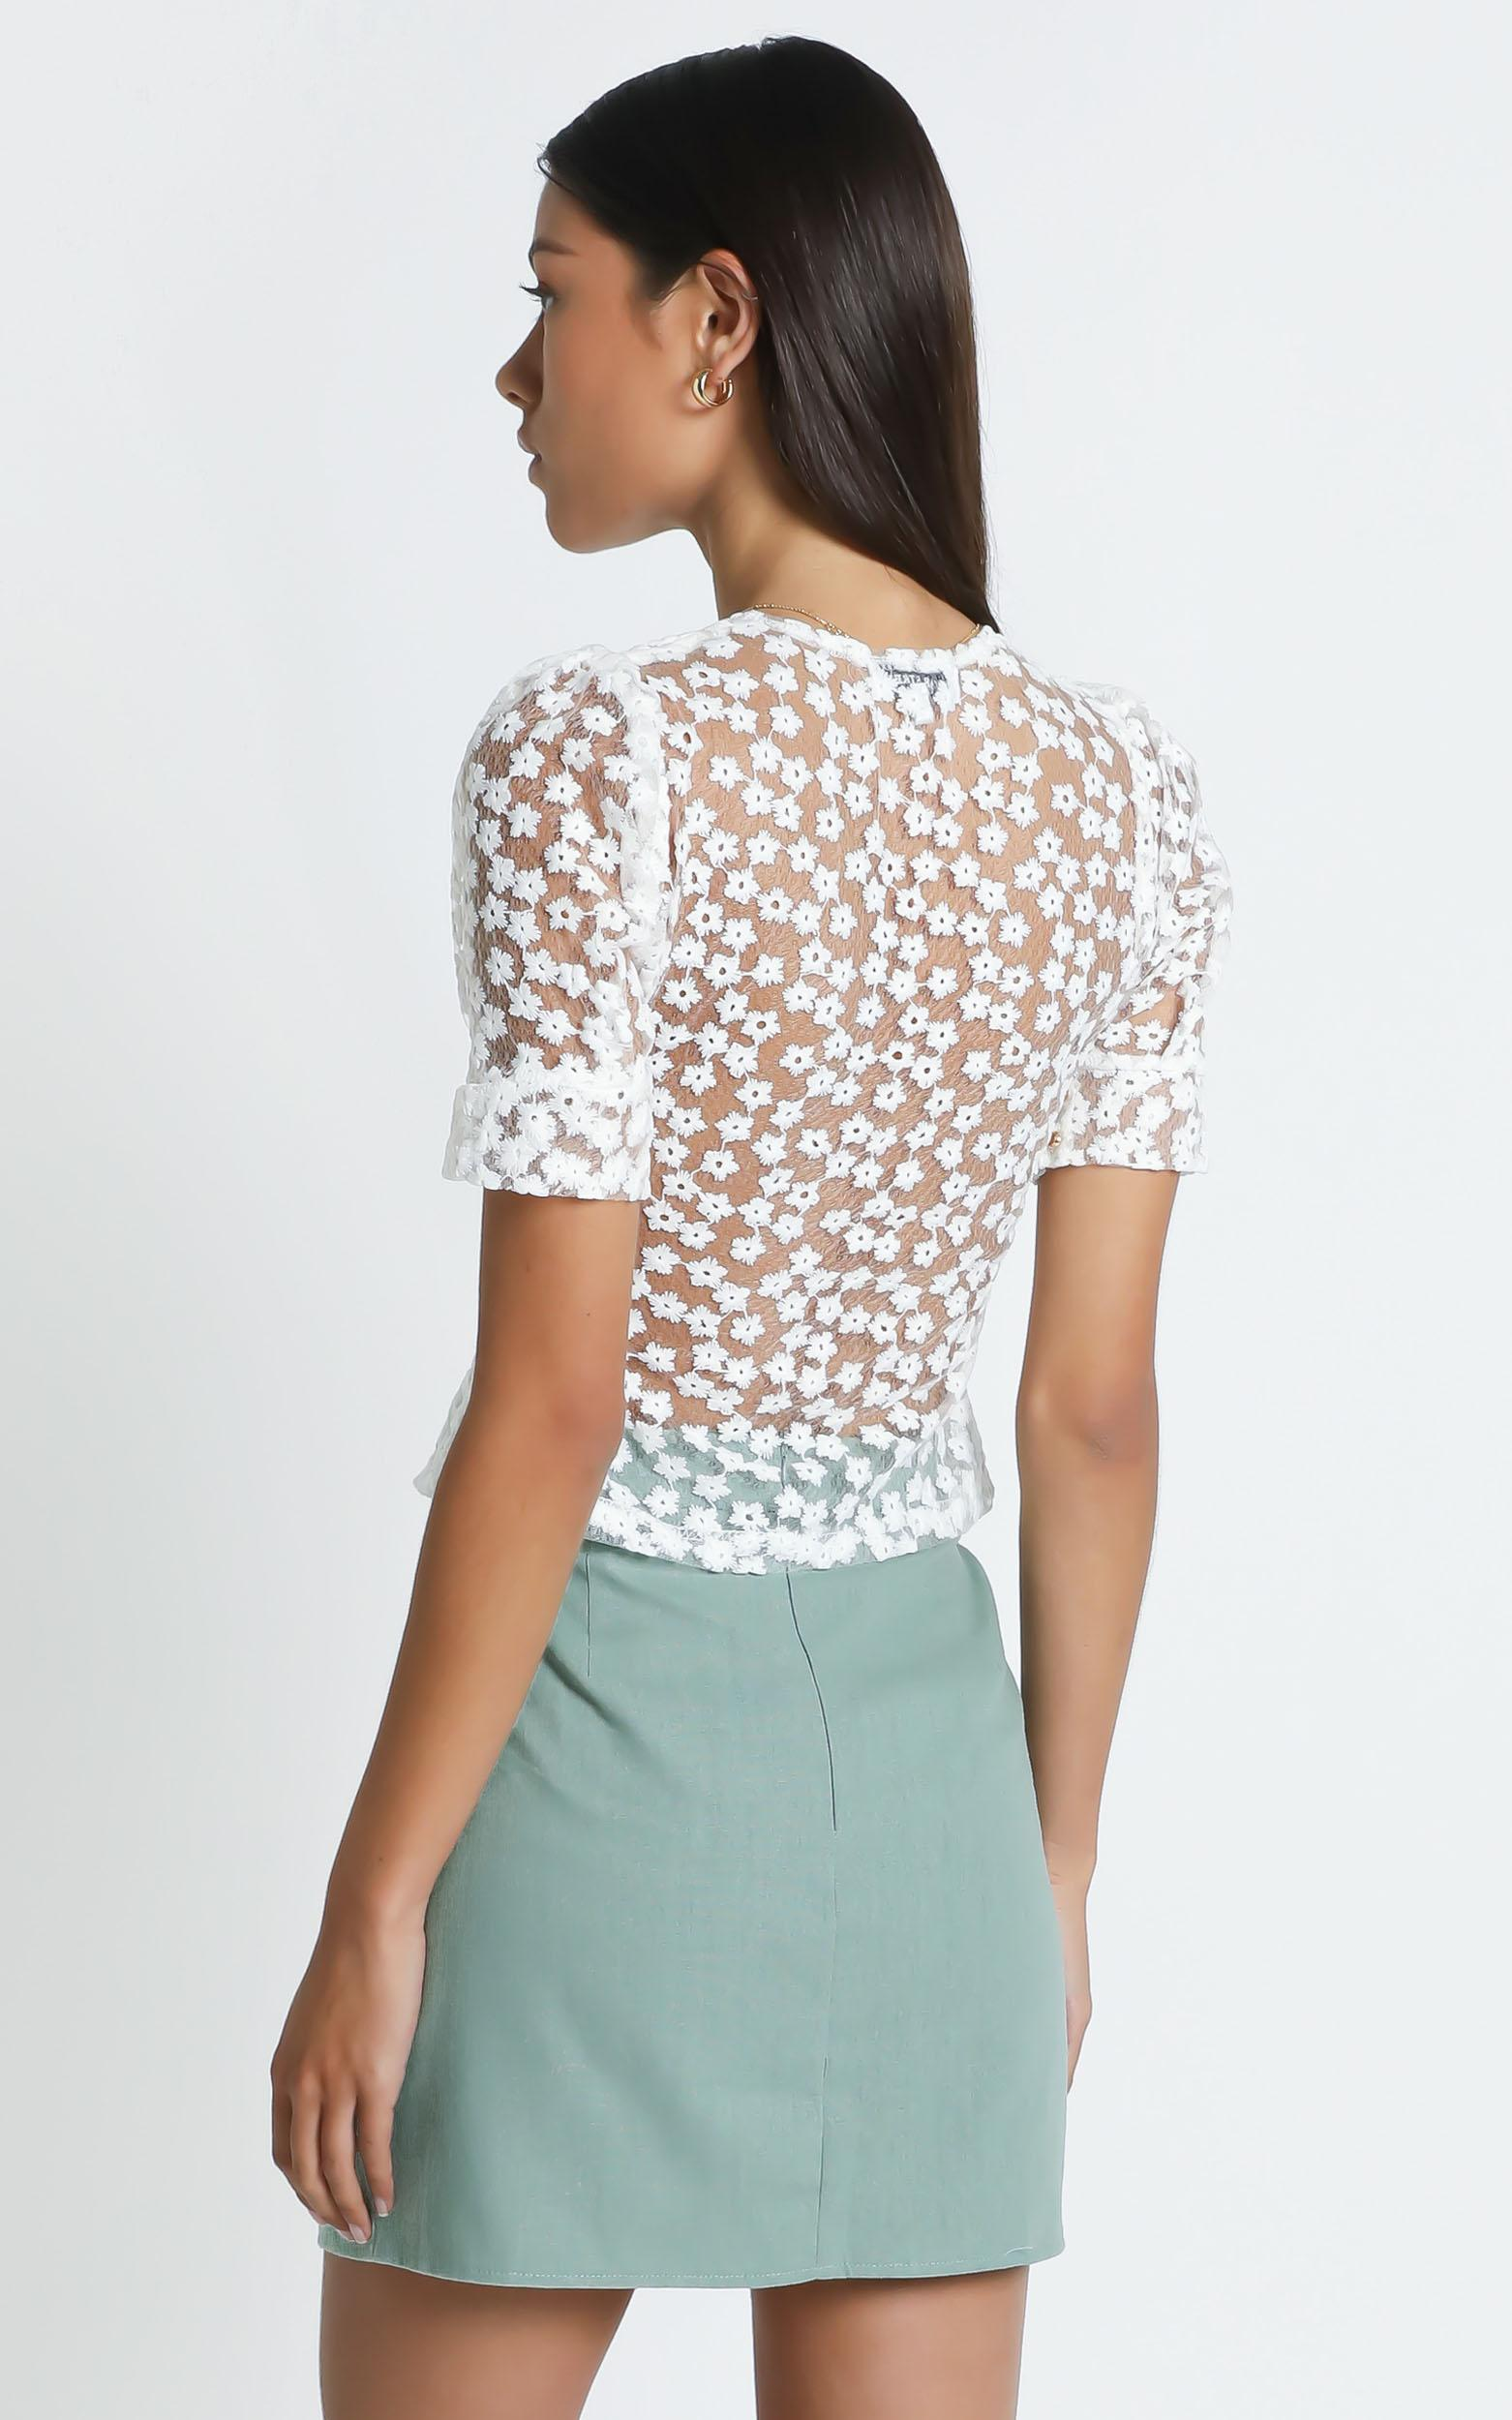 Cici Top in White - 10 (M), White, hi-res image number null